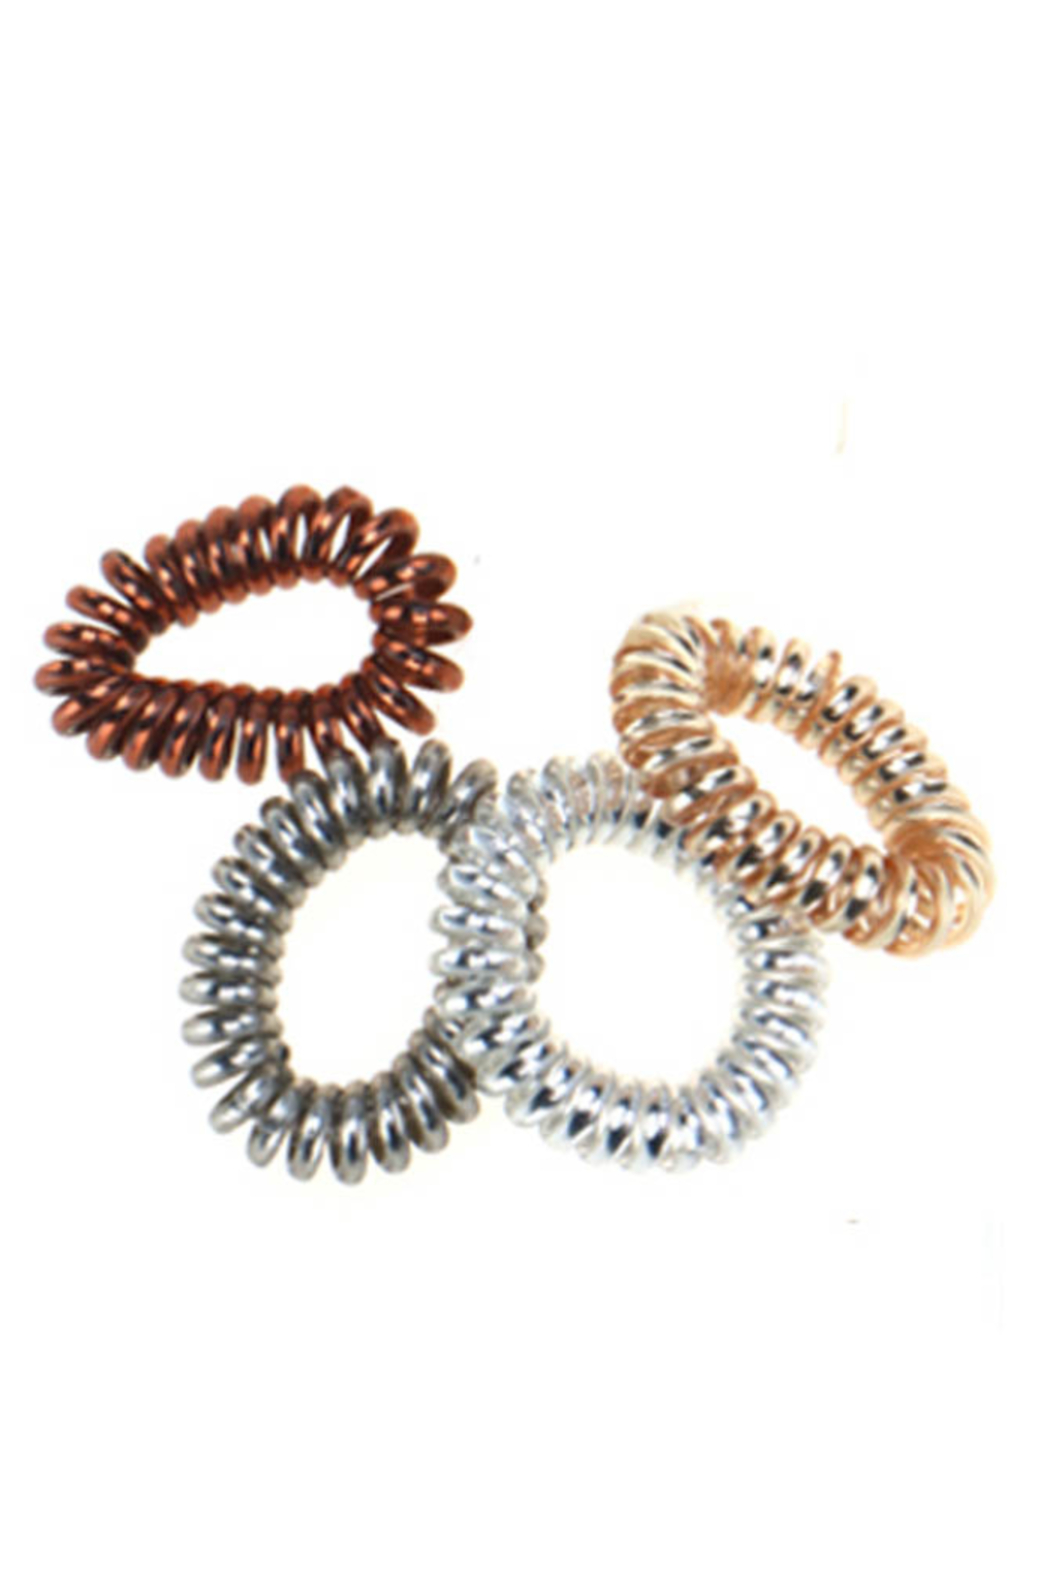 Lyn-Maree's  4 Pack of Hair Coils - Main Image